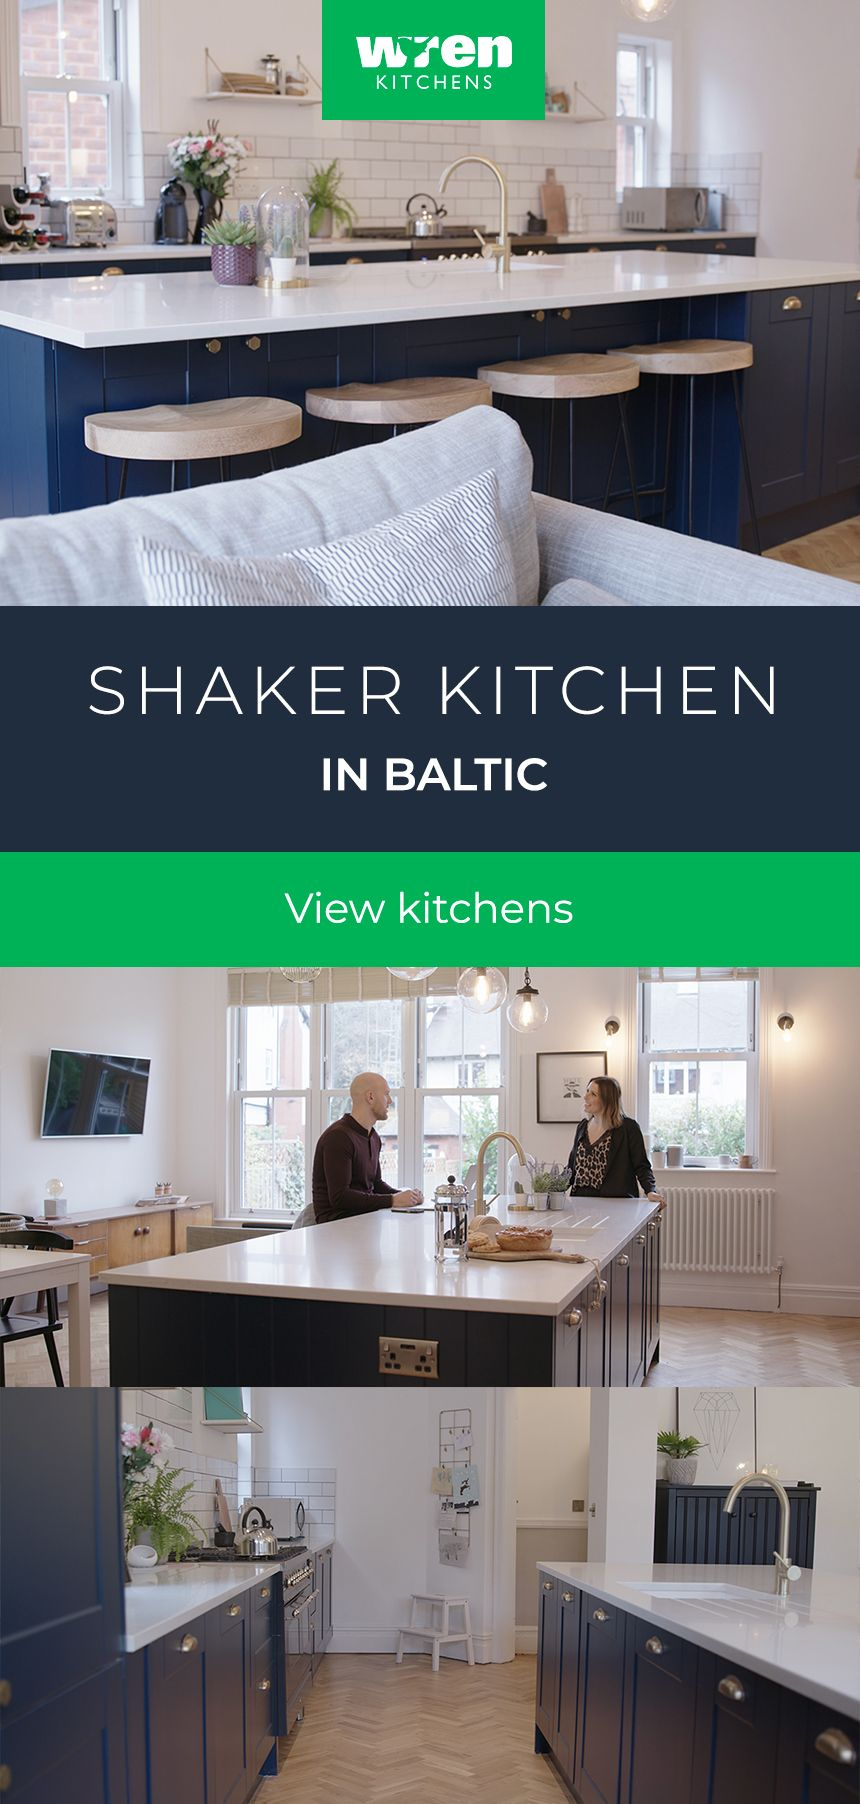 A Shaker kitchen was the perfect partner for a period home